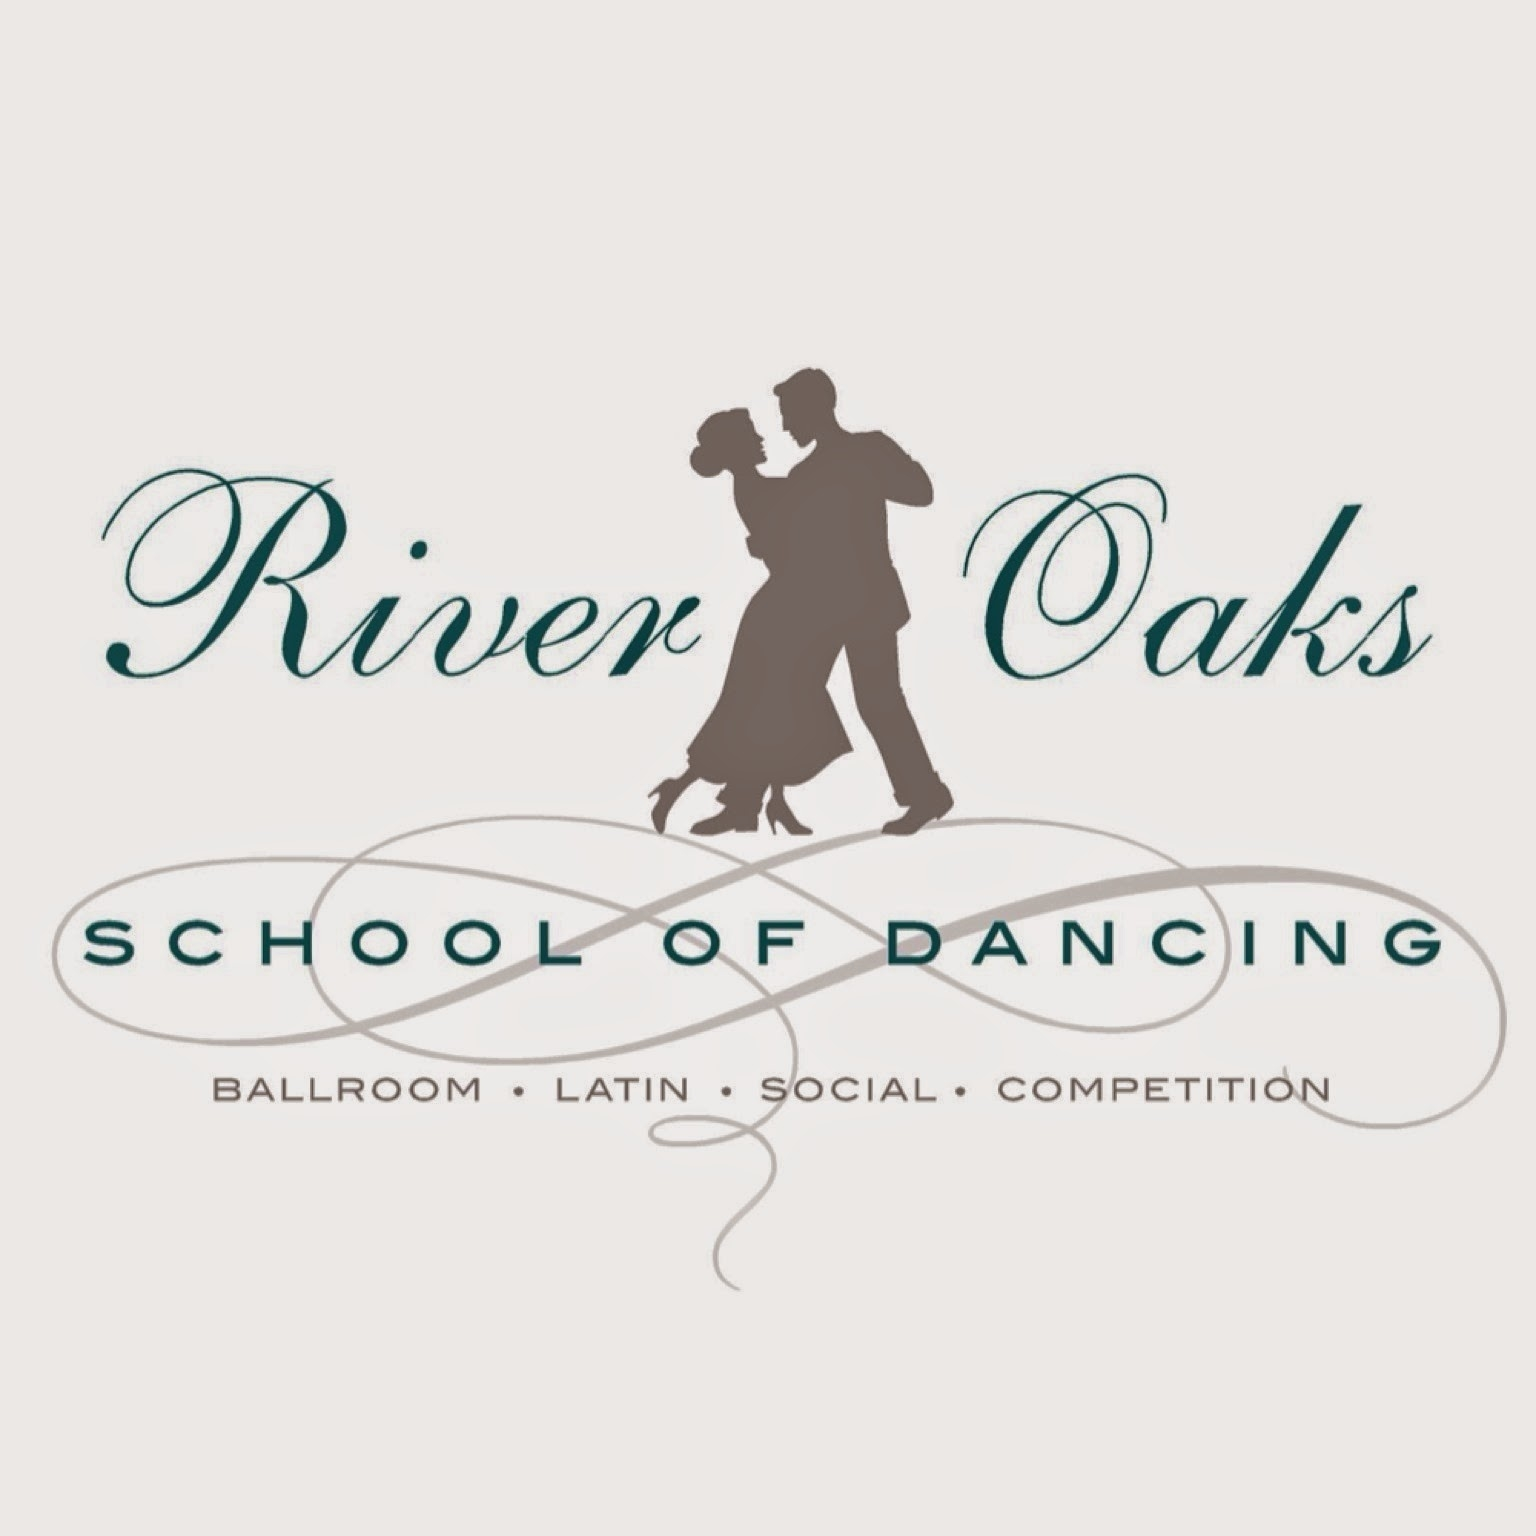 business decision of rivers dance school An official chart of the best-selling singles of the 1970s was produced by the bmrb and broadcast on the uk's national pop music radio station bbc radio 1 on 31 december 1979 however, this chart is no longer considered accurate due to the method of data collection by the bmrb and has since been superseded.